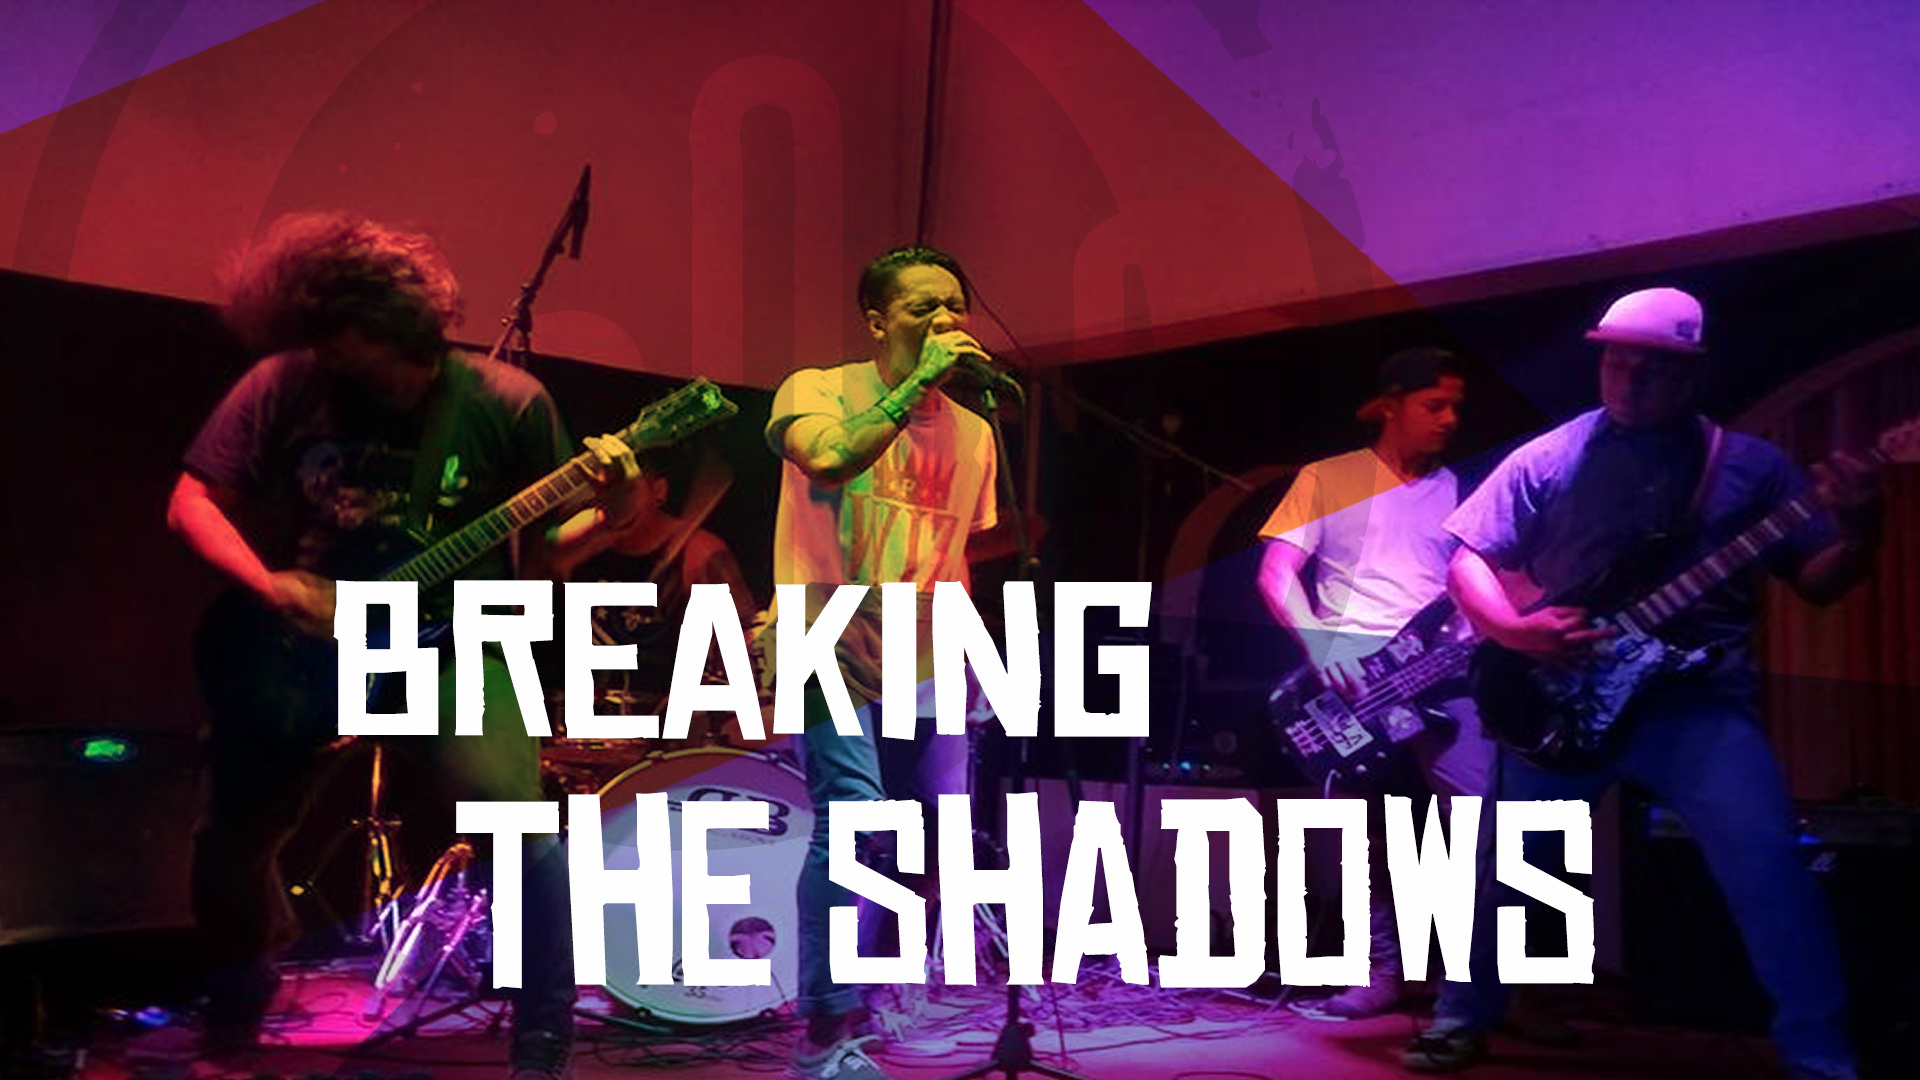 """On Burning Wings"", lo nuevo de Breaking The Shadows."